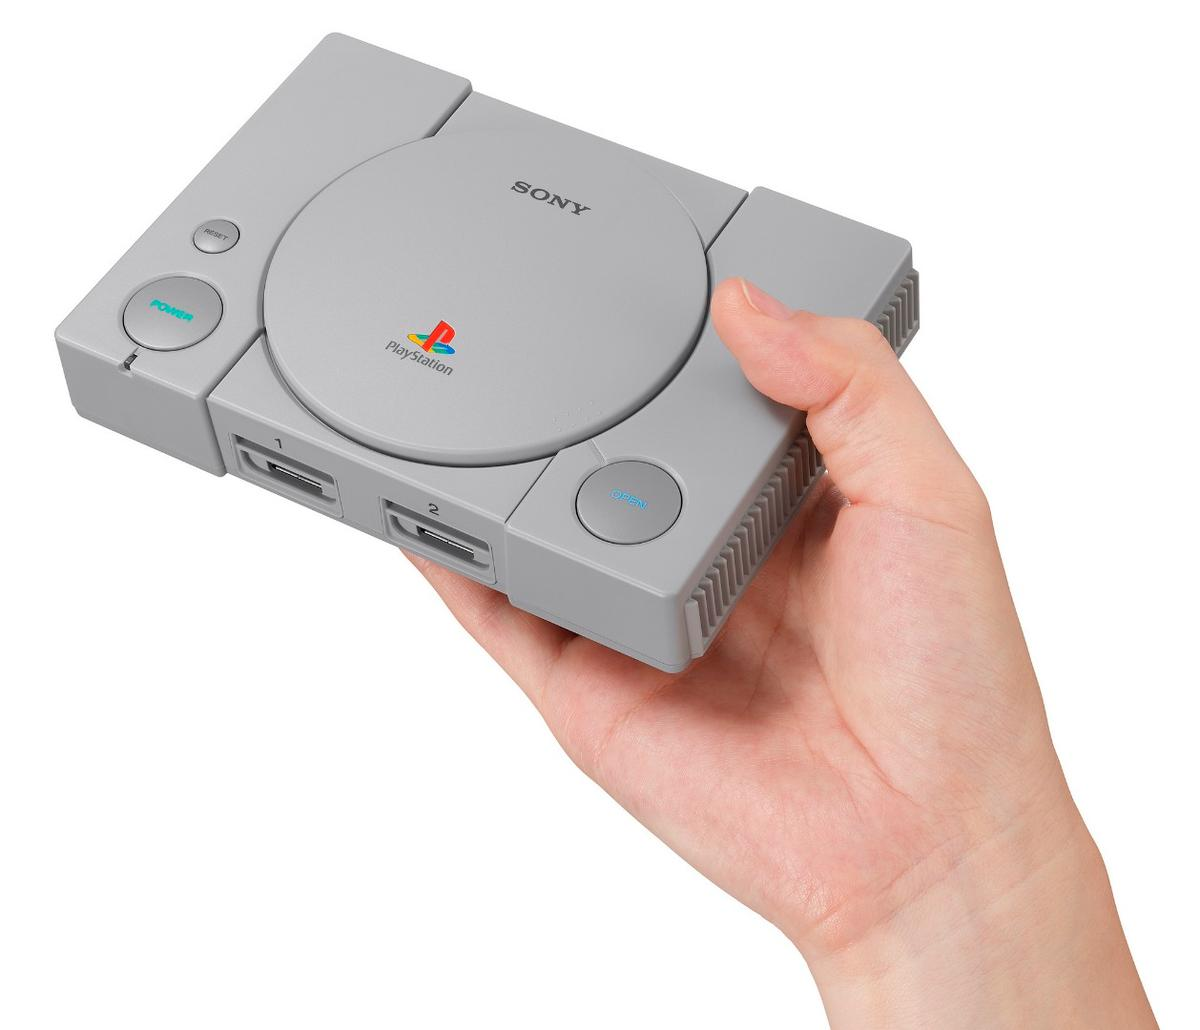 Sony has announced the PlayStation Classic, a retro mini version of the original games console